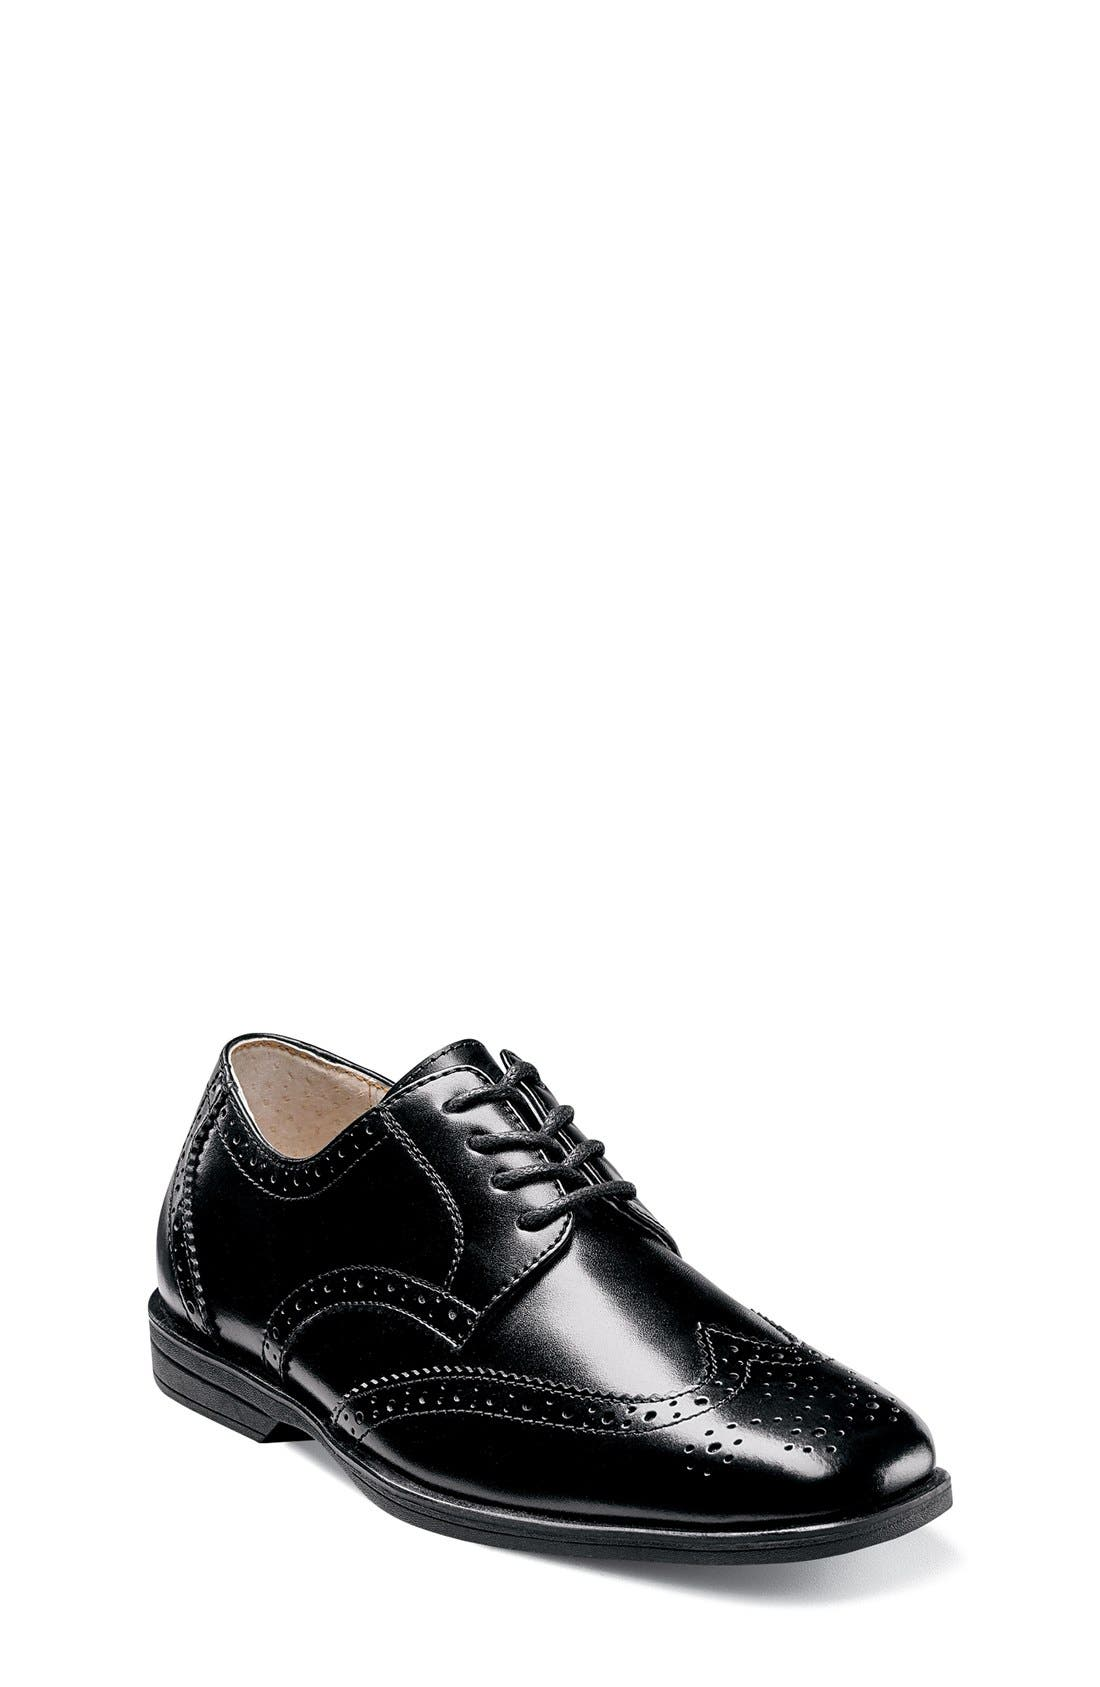 Florsheim 'Reveal' Wingtip Oxford (Toddler, Little Kid & Big Kid)